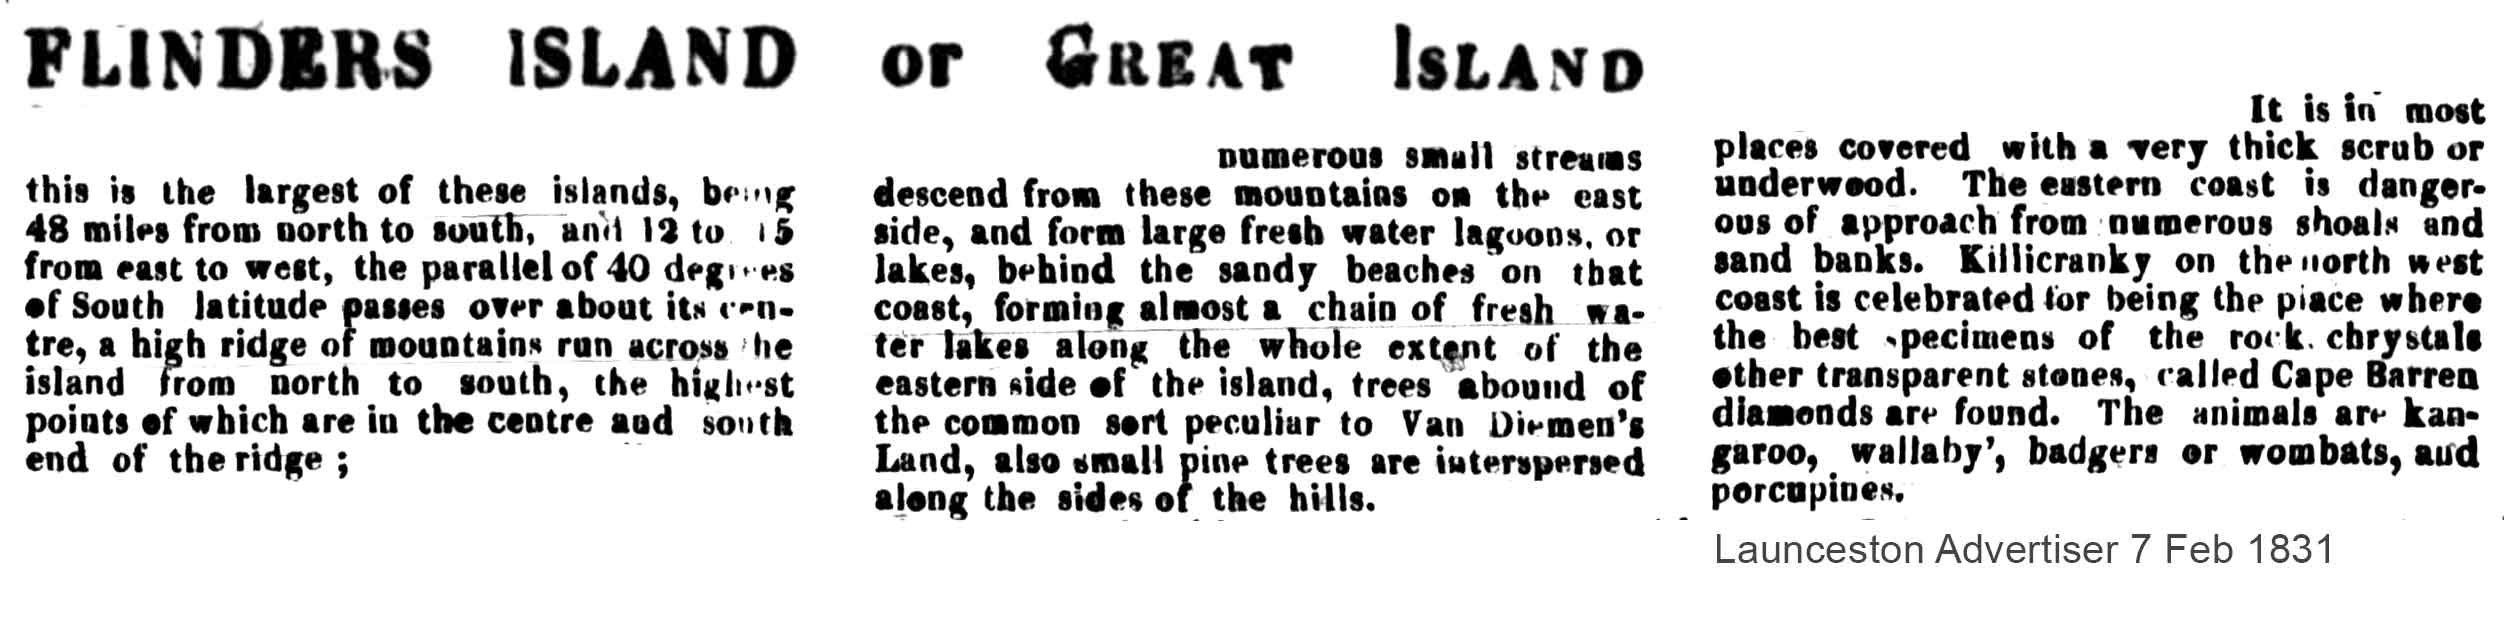 flinders island nespaper quote